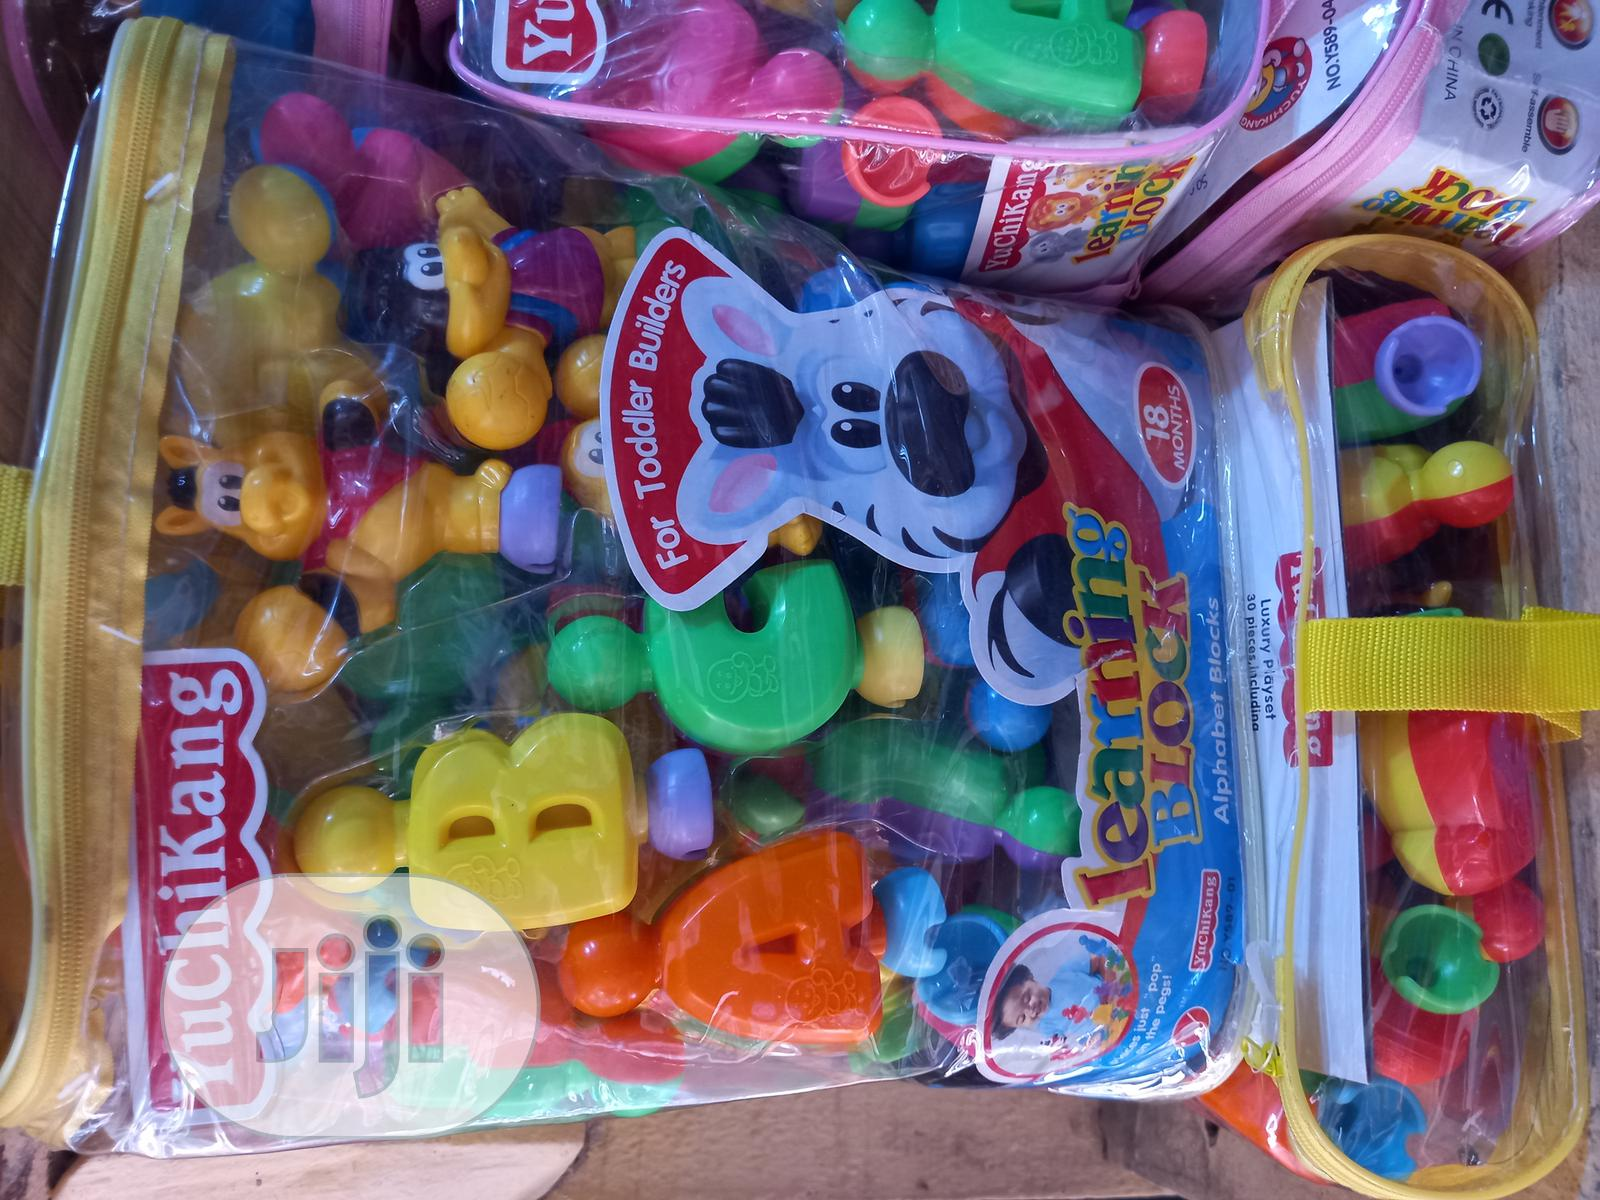 Building Learning Blocks | Toys for sale in Apapa, Lagos State, Nigeria